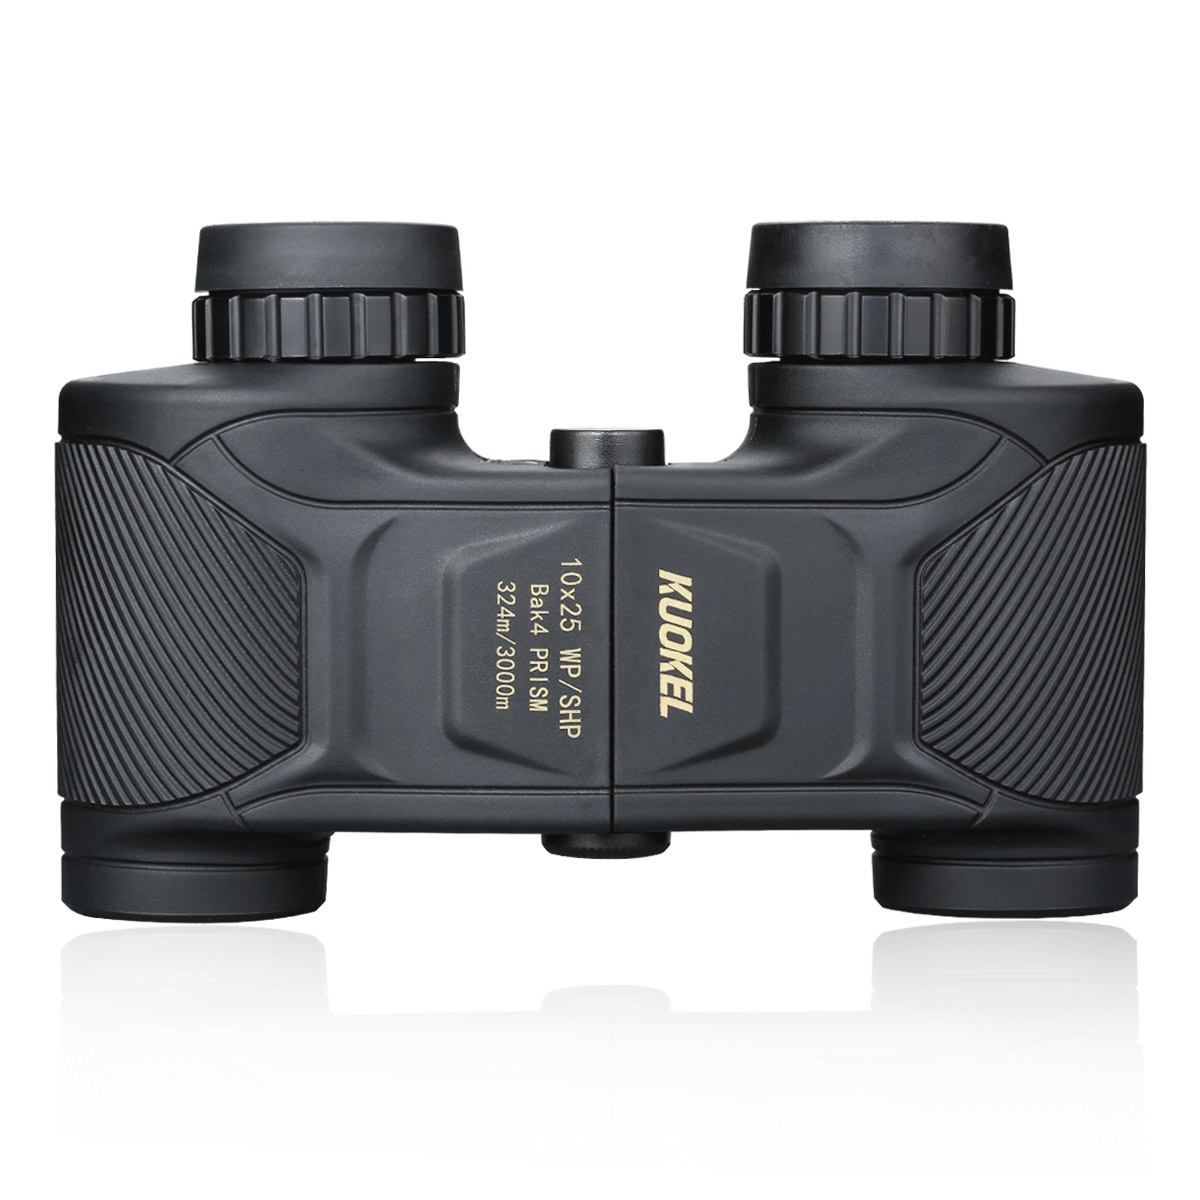 Kuokel 10x25 324/3000M BAK4 Ultra-Vision Compact for Adults Folding Binoculars Telescope Durable Portable for Bird Watching Kids Chidren Gift Sport Game Concerts